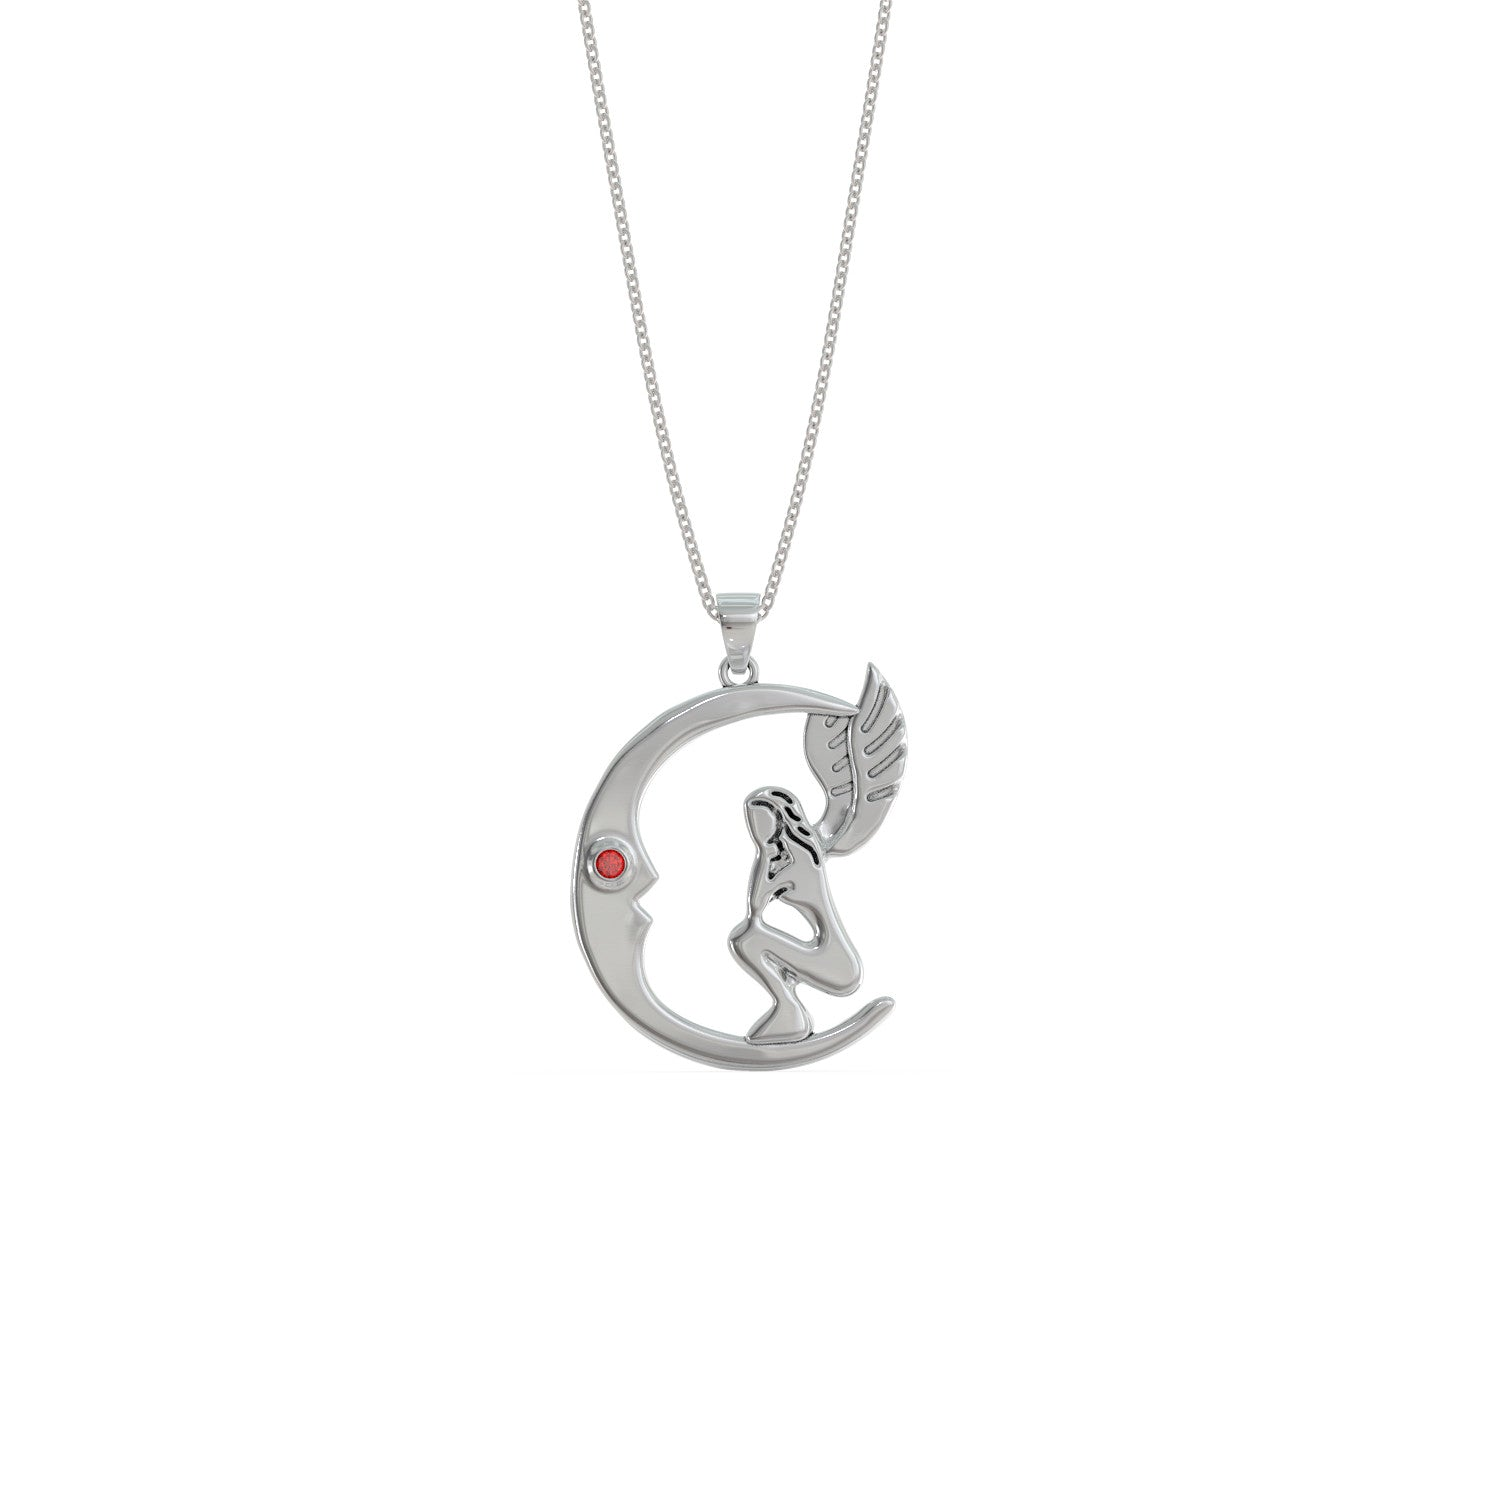 silver necklace exclusivity designexclusivity pendant fairy product sterling by